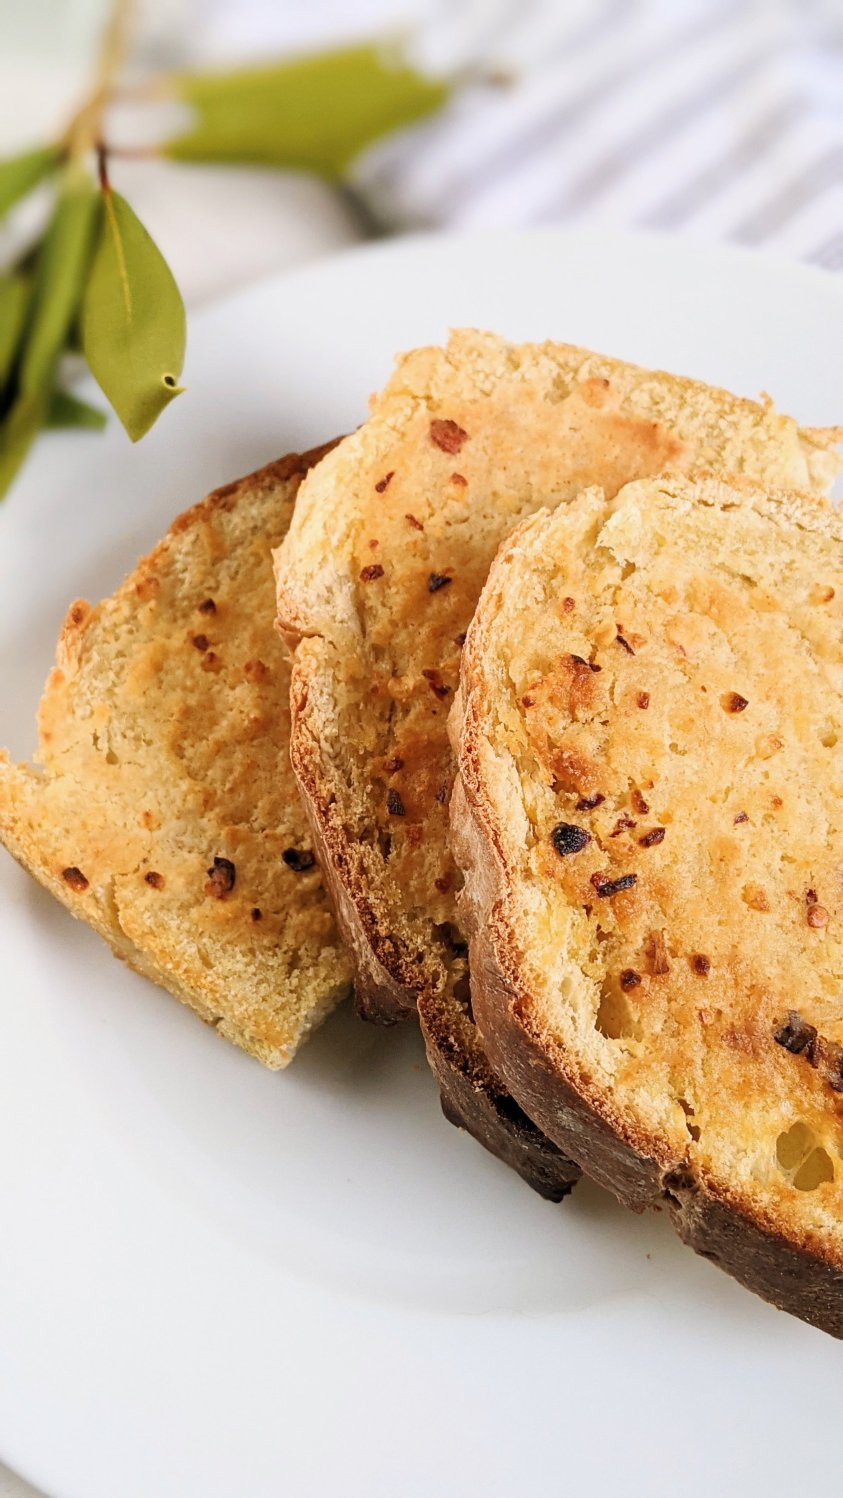 healthy garlic bread recipe in the air frier air fried garlic bread with homemade sourdough bread or gluten free sliced bread vegan vegetarian meatless monday dinner ideas veganuary air frier recipes